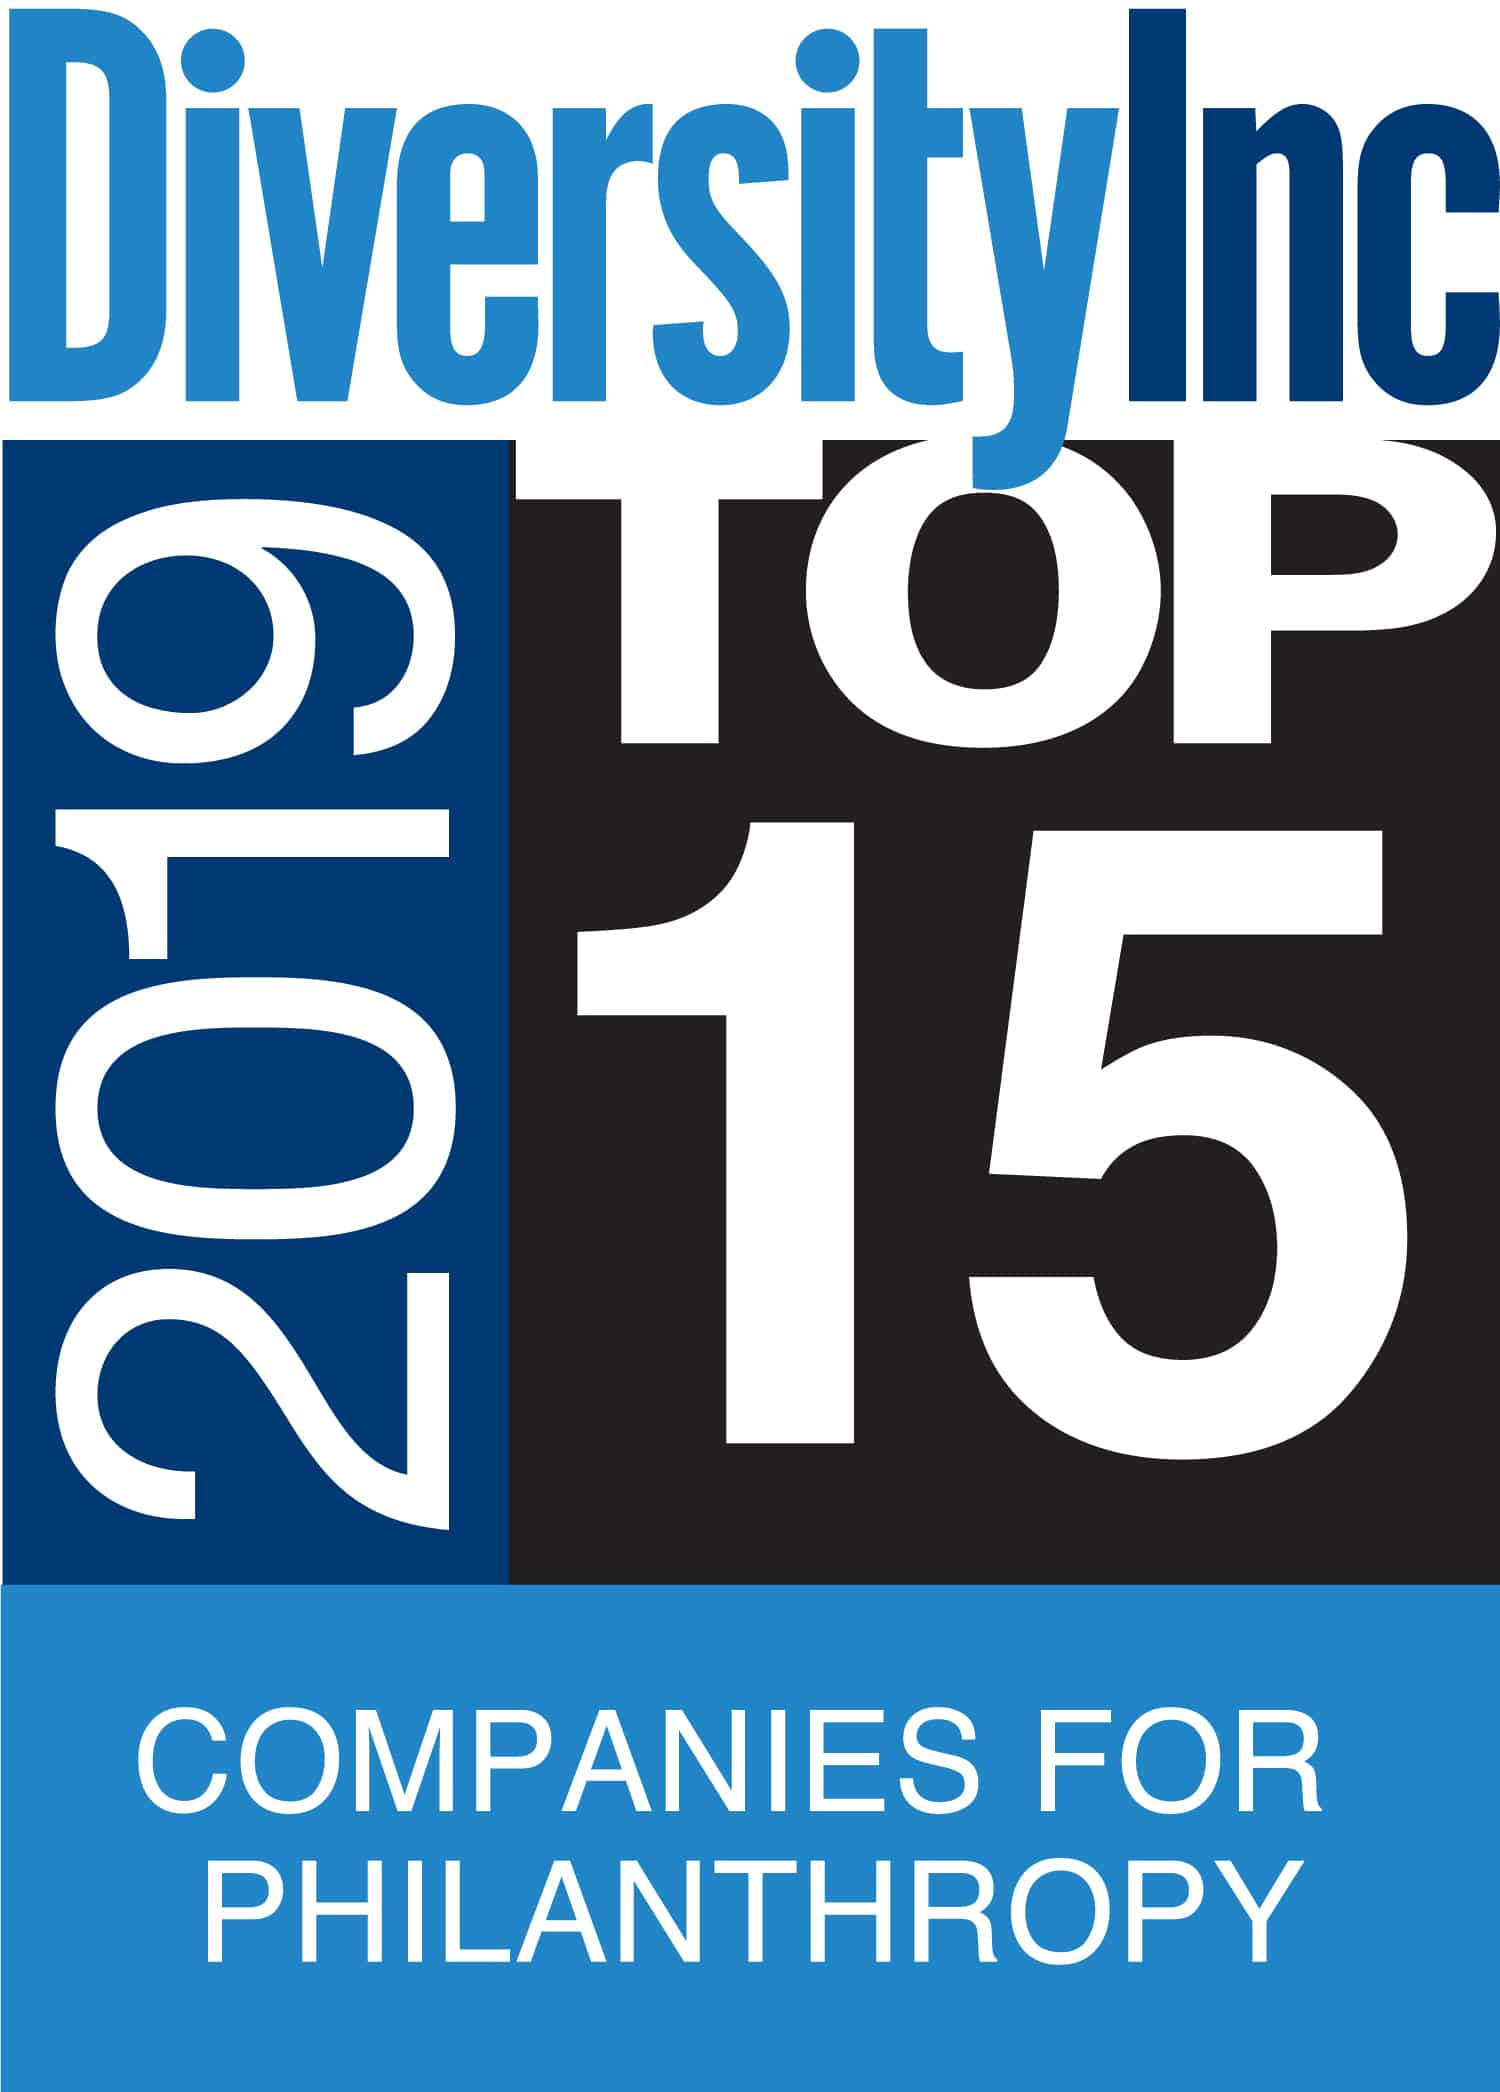 Diversity Inc award - 2019 Top 15 Companies for Philanthropy